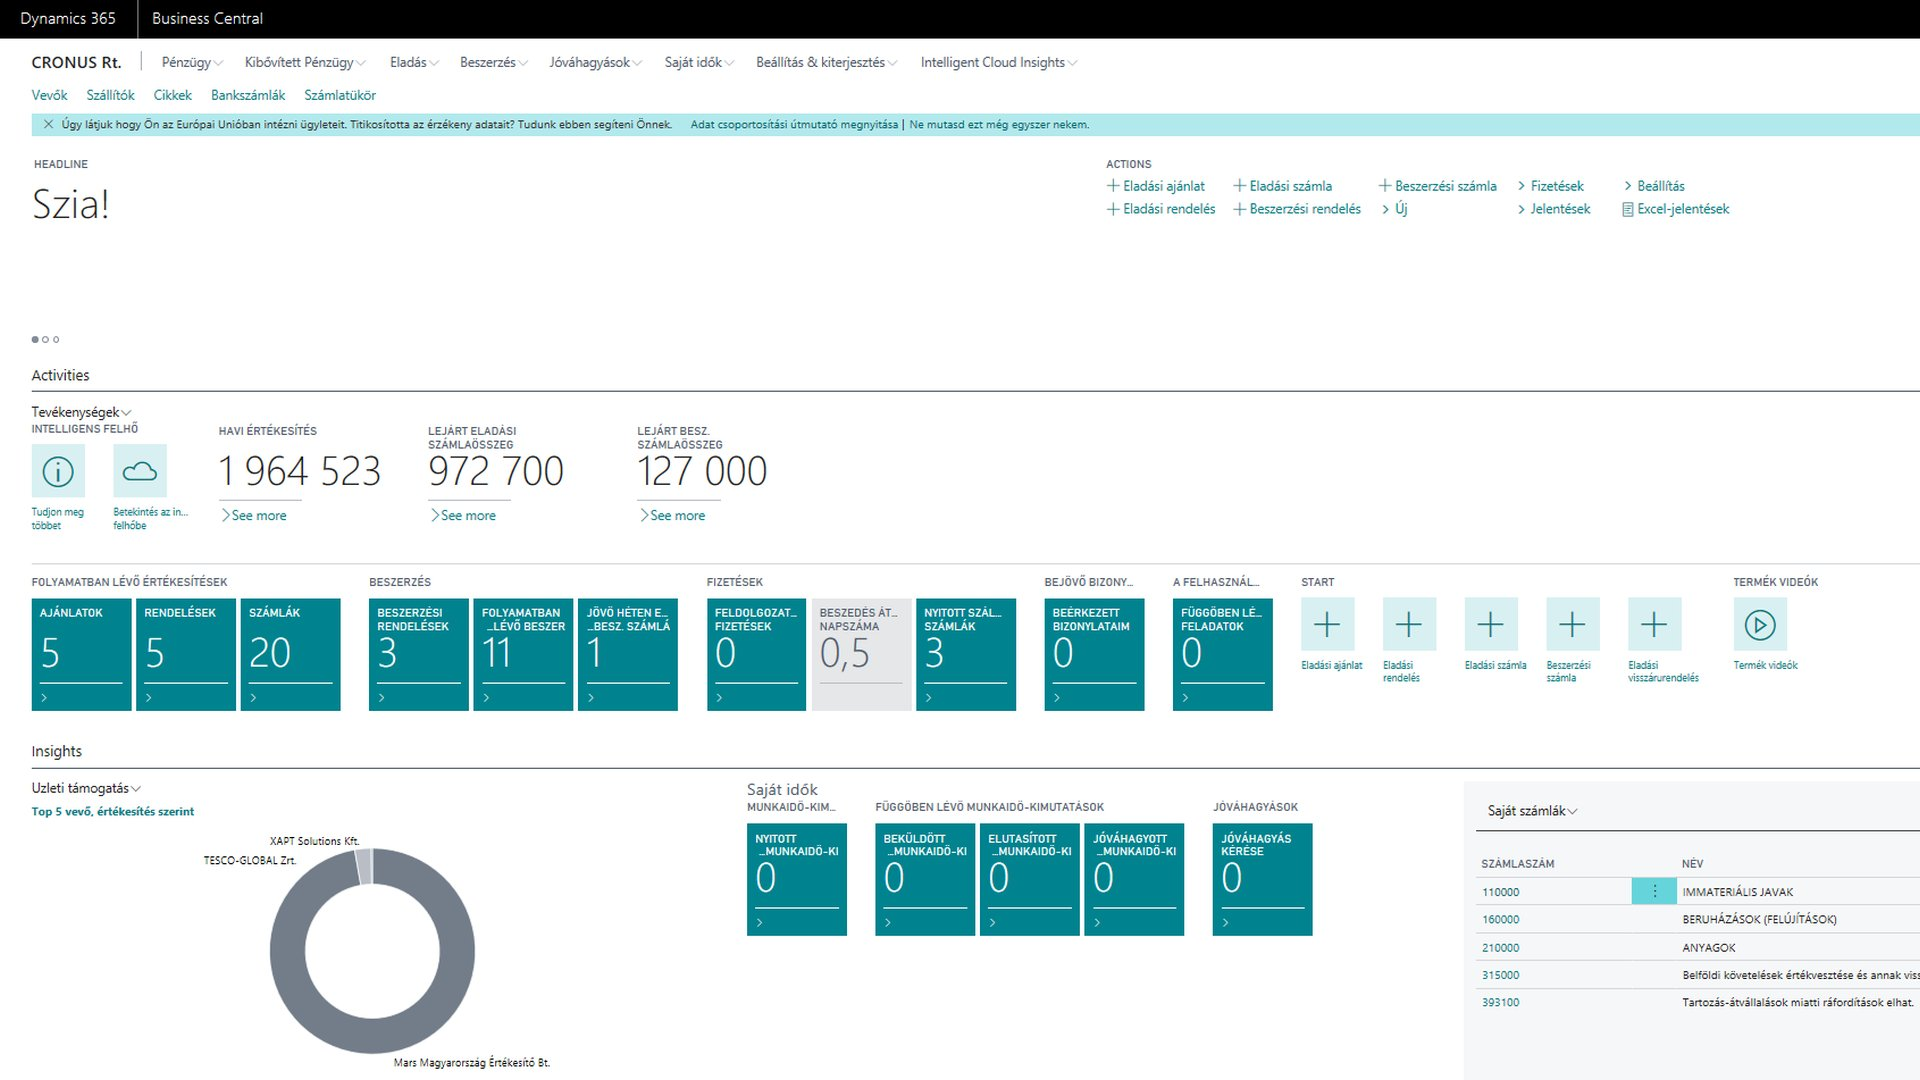 Dynamics 365 Business Central - dashboard